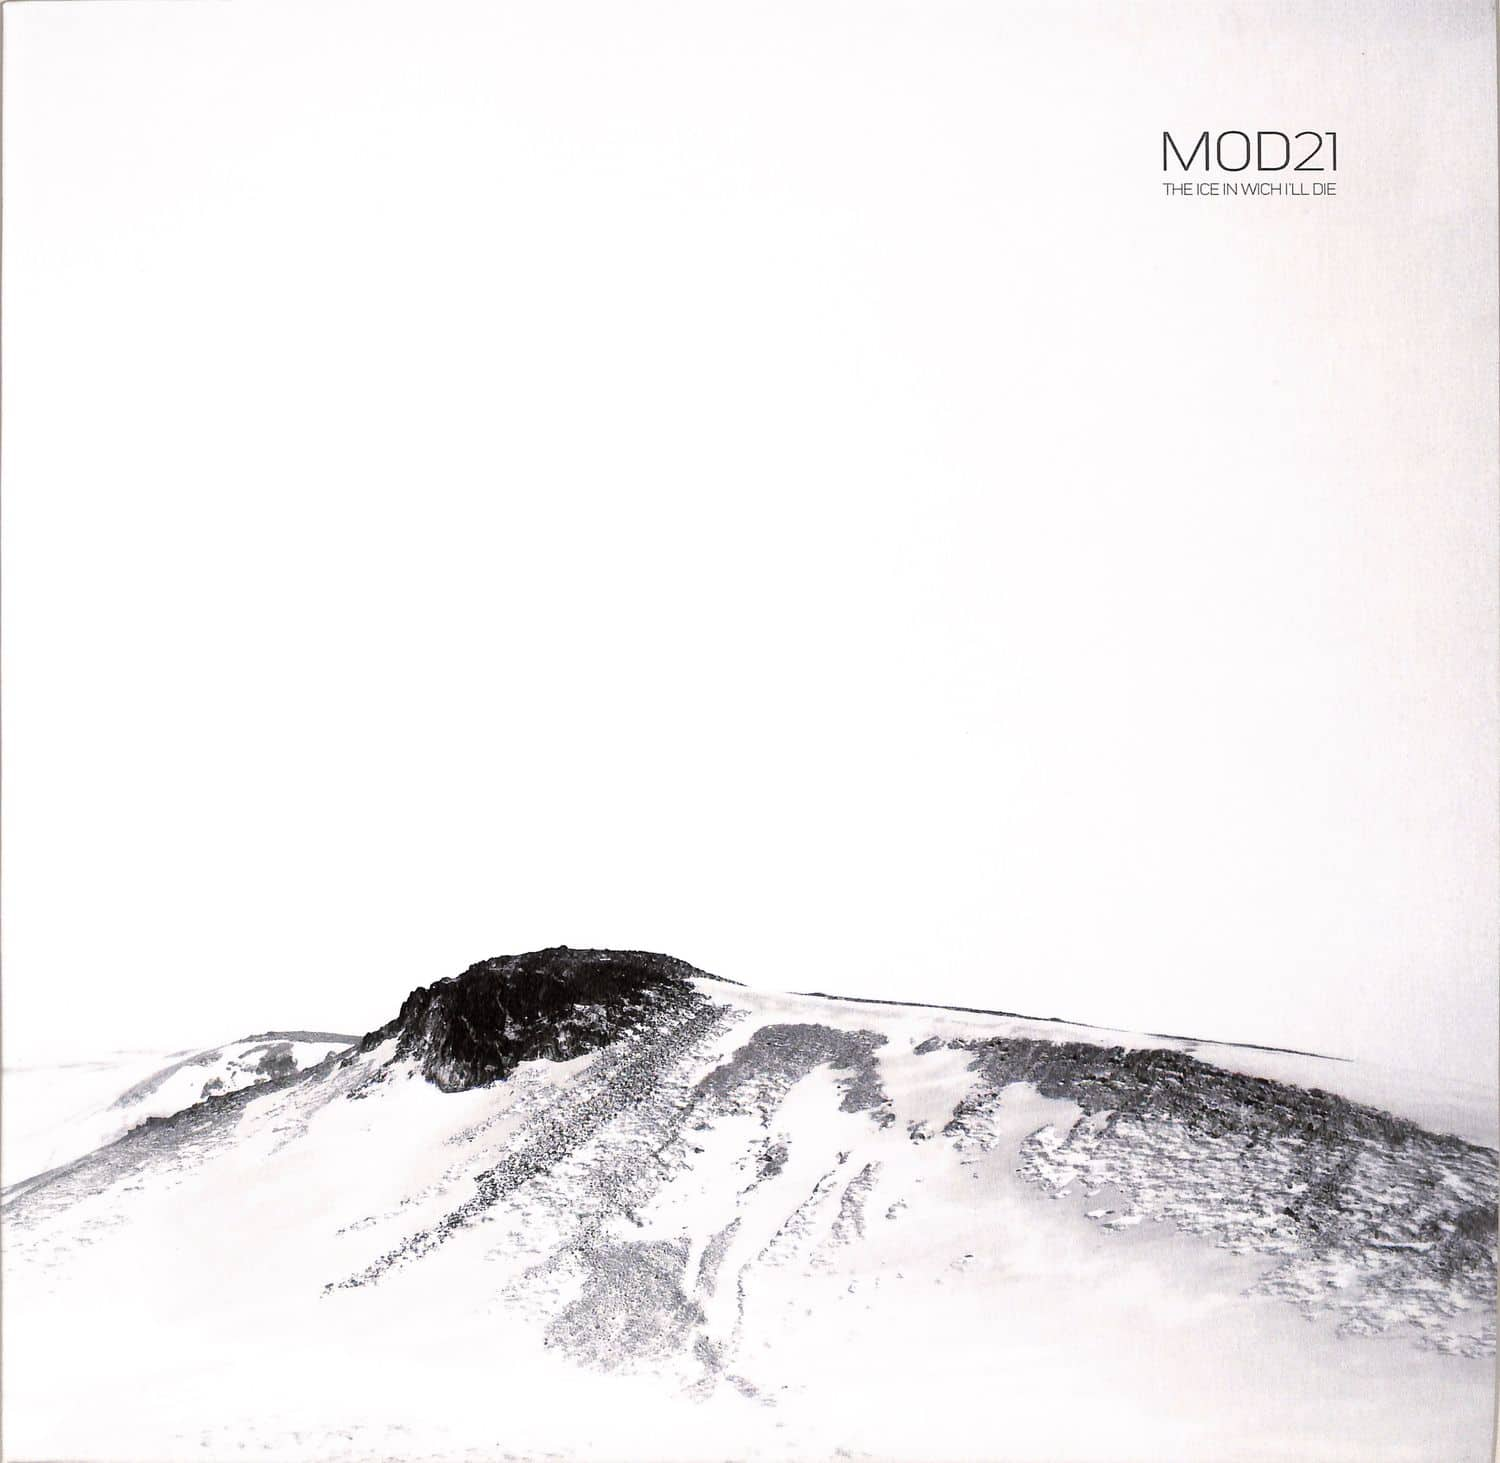 MOD21 - THE ICE IN WHICH ILL DIE